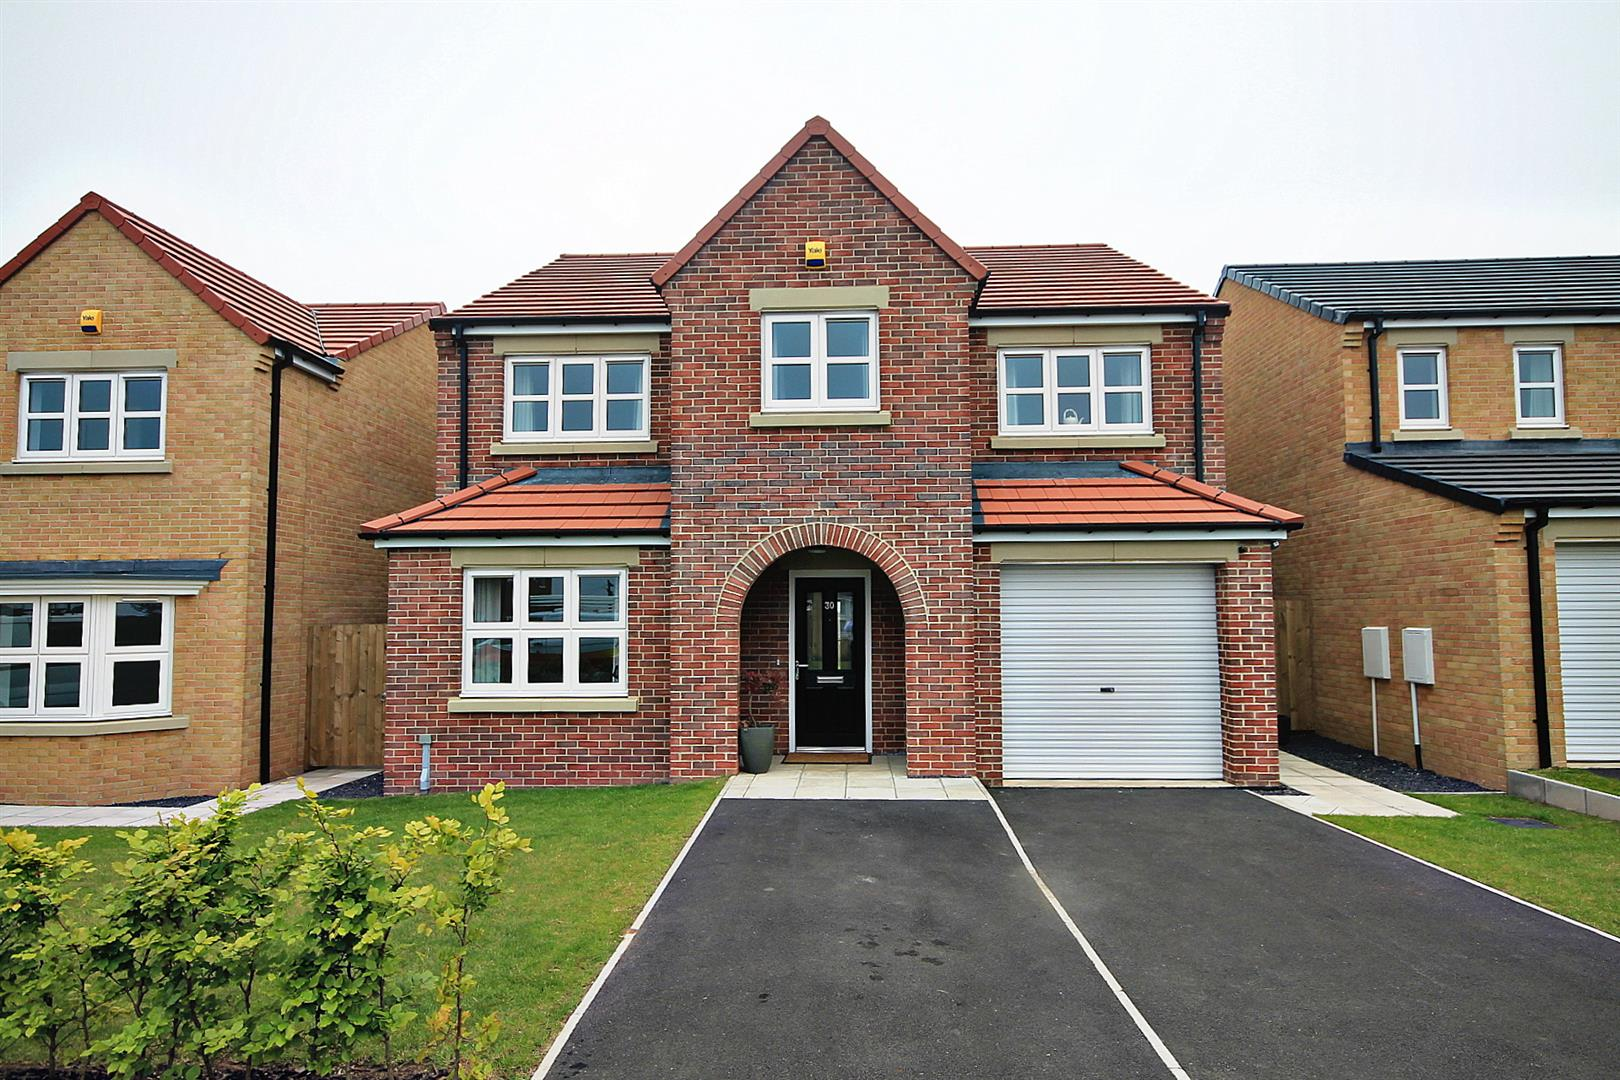 5 Bedrooms Detached House for sale in Youll Close, Thornley, Durham